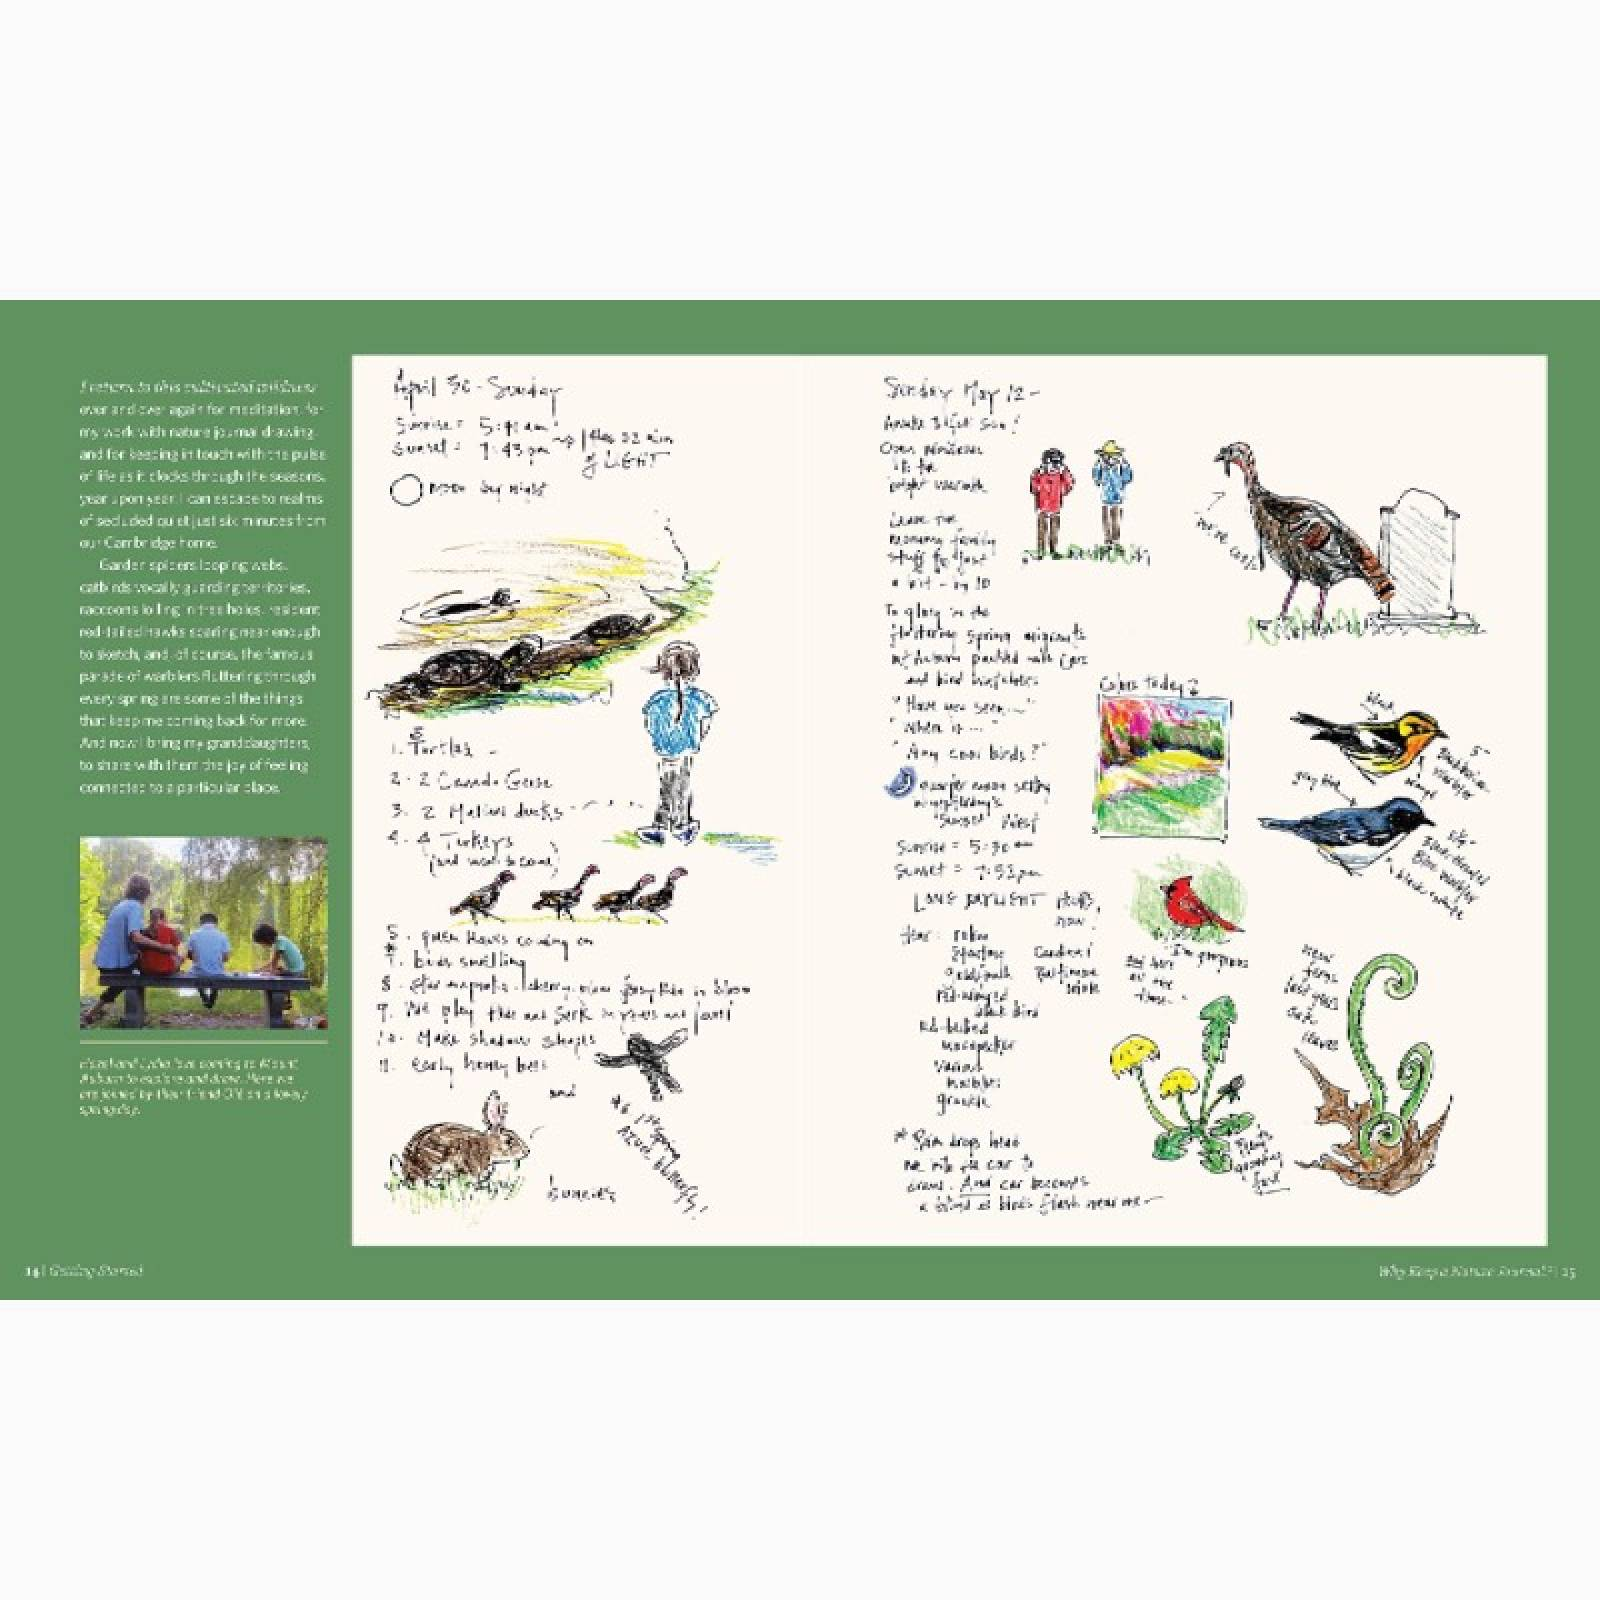 Keeping A Nature Journal - Paperback Book thumbnails